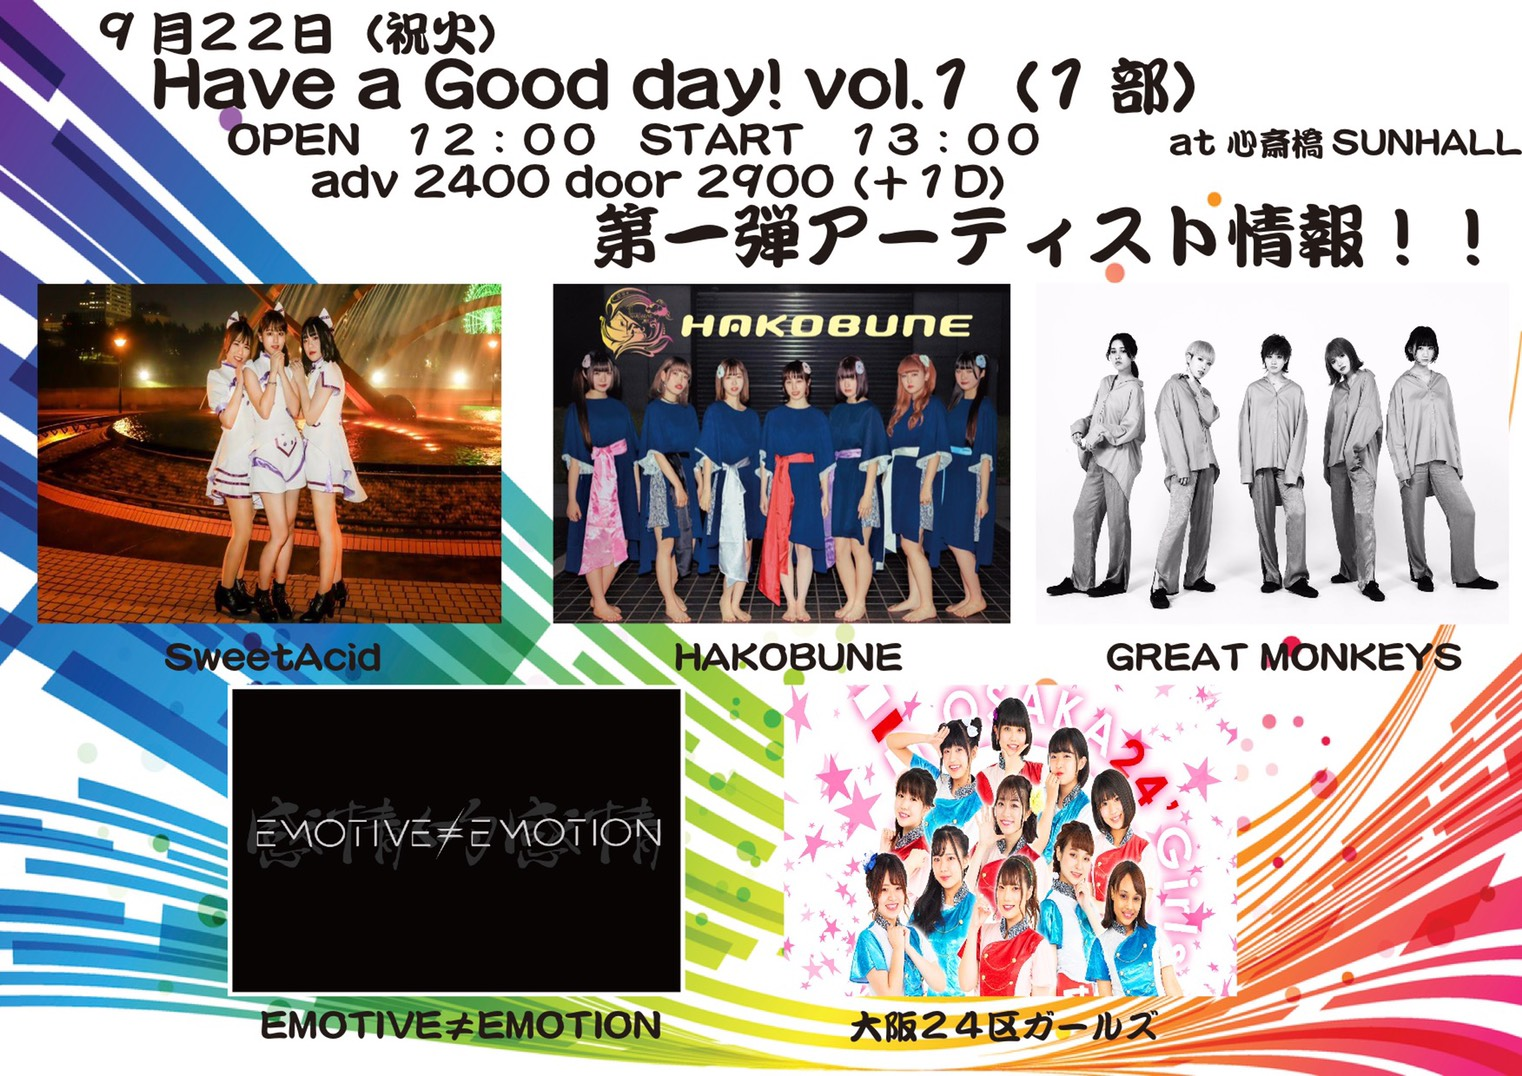 Have a Good Day! vol.1